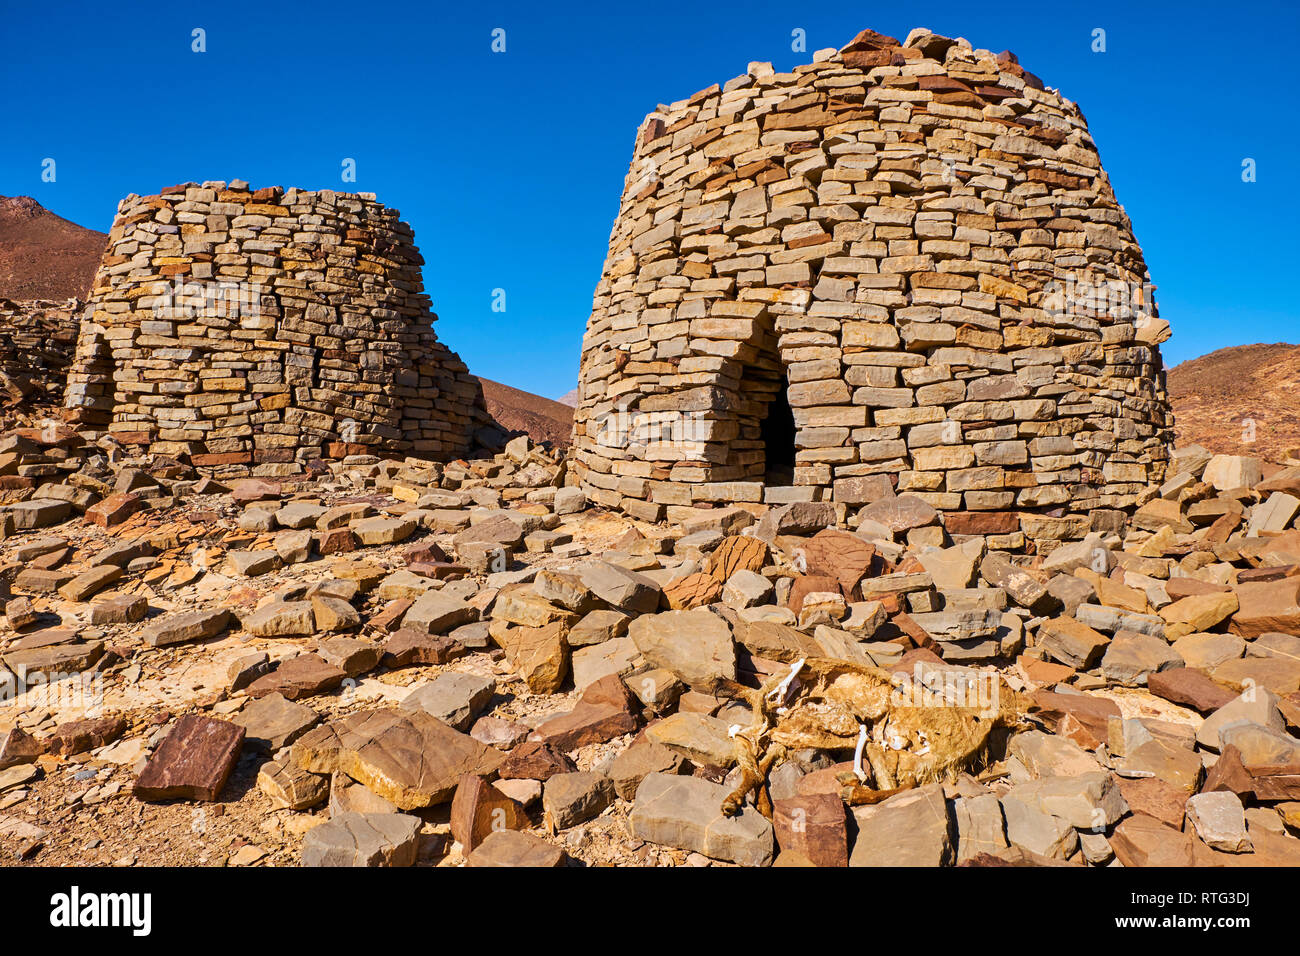 Sultanate of Oman, Ad Dhahirah region, Wadi Damm, 5000 year old stone tomb at Al Ayn, UNESCO World Heritage Site - Stock Image